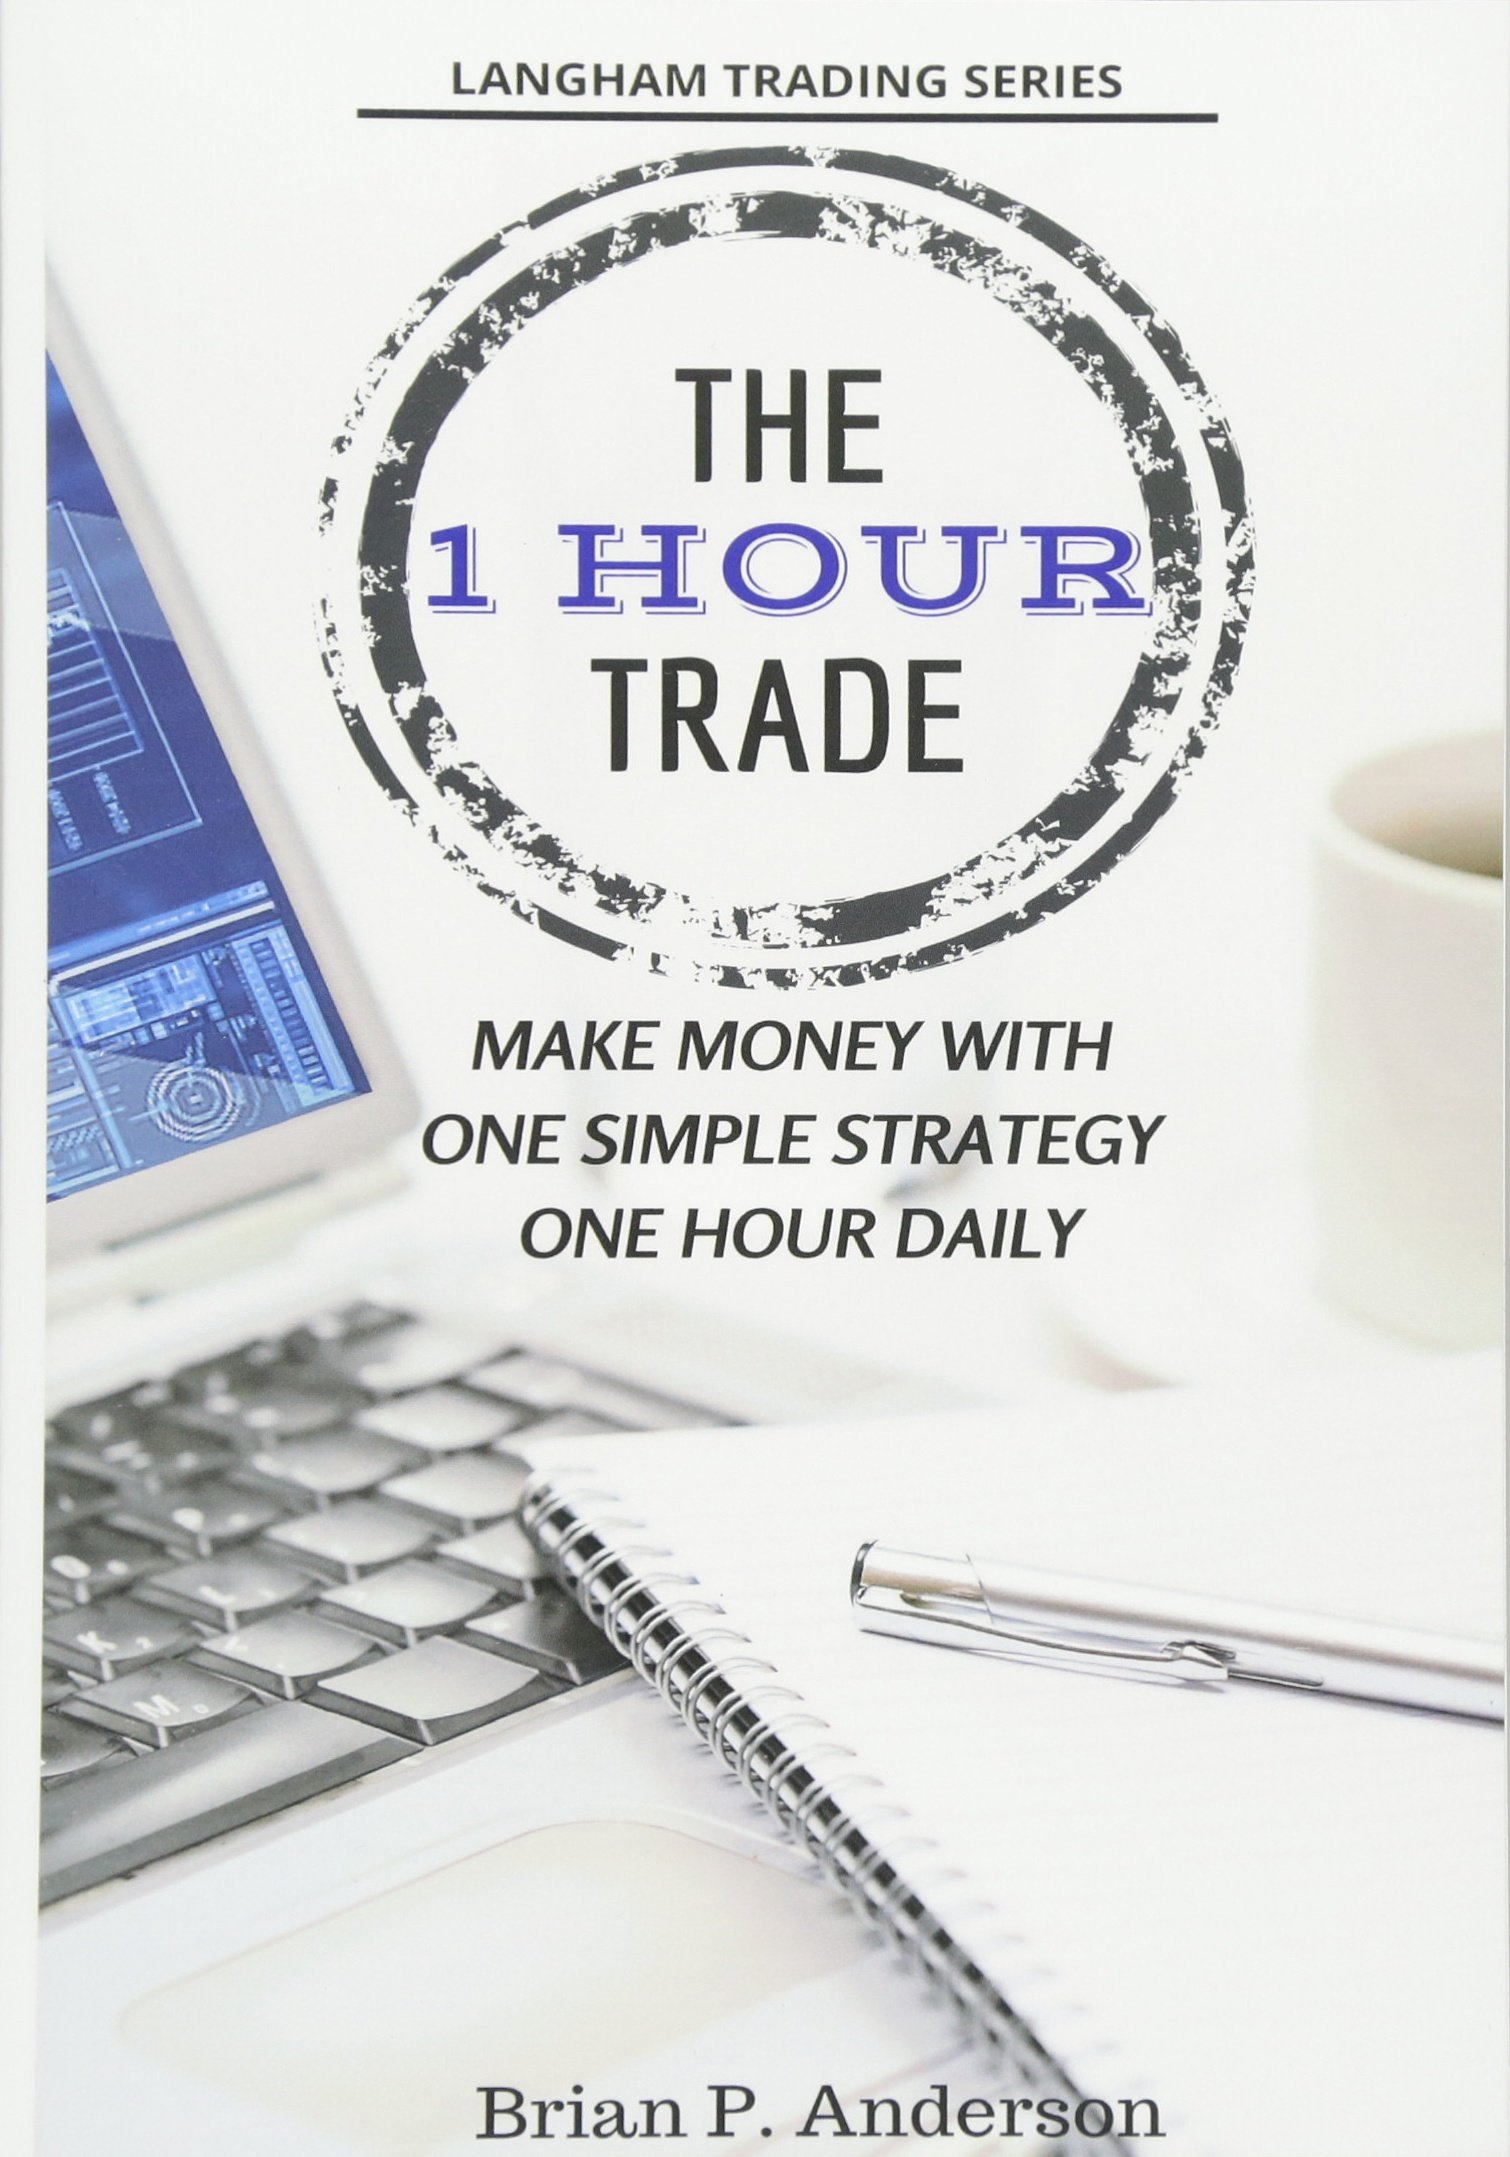 Hour Trade Strategy Langham Trading product image